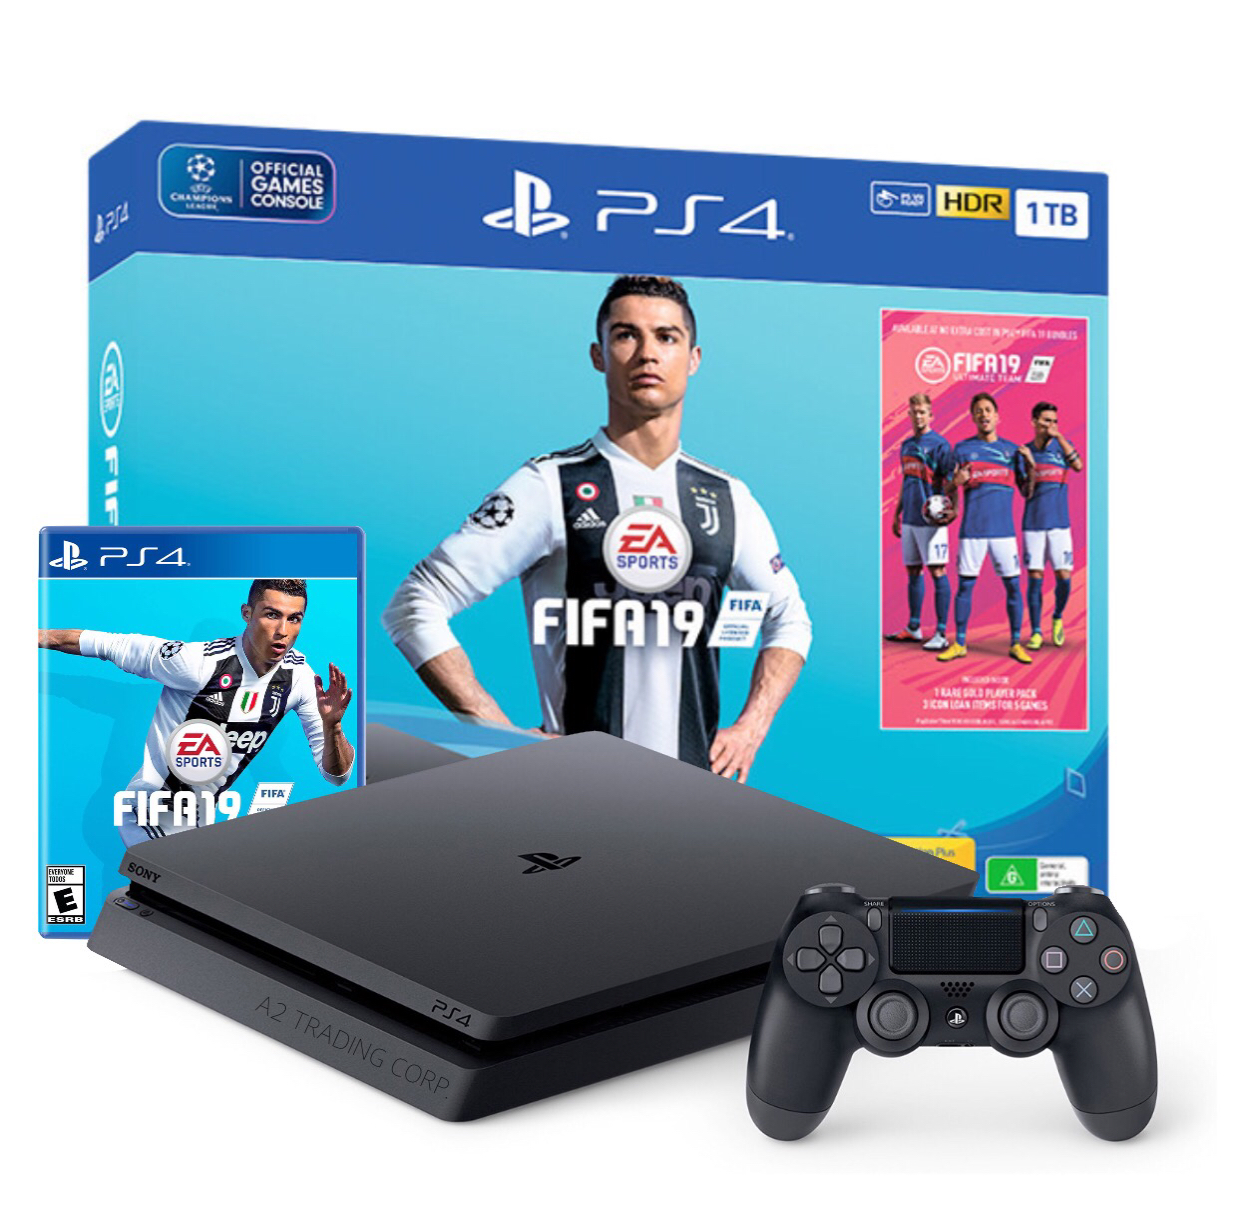 PS4 Slim 1TB with FIFA19 Bundle